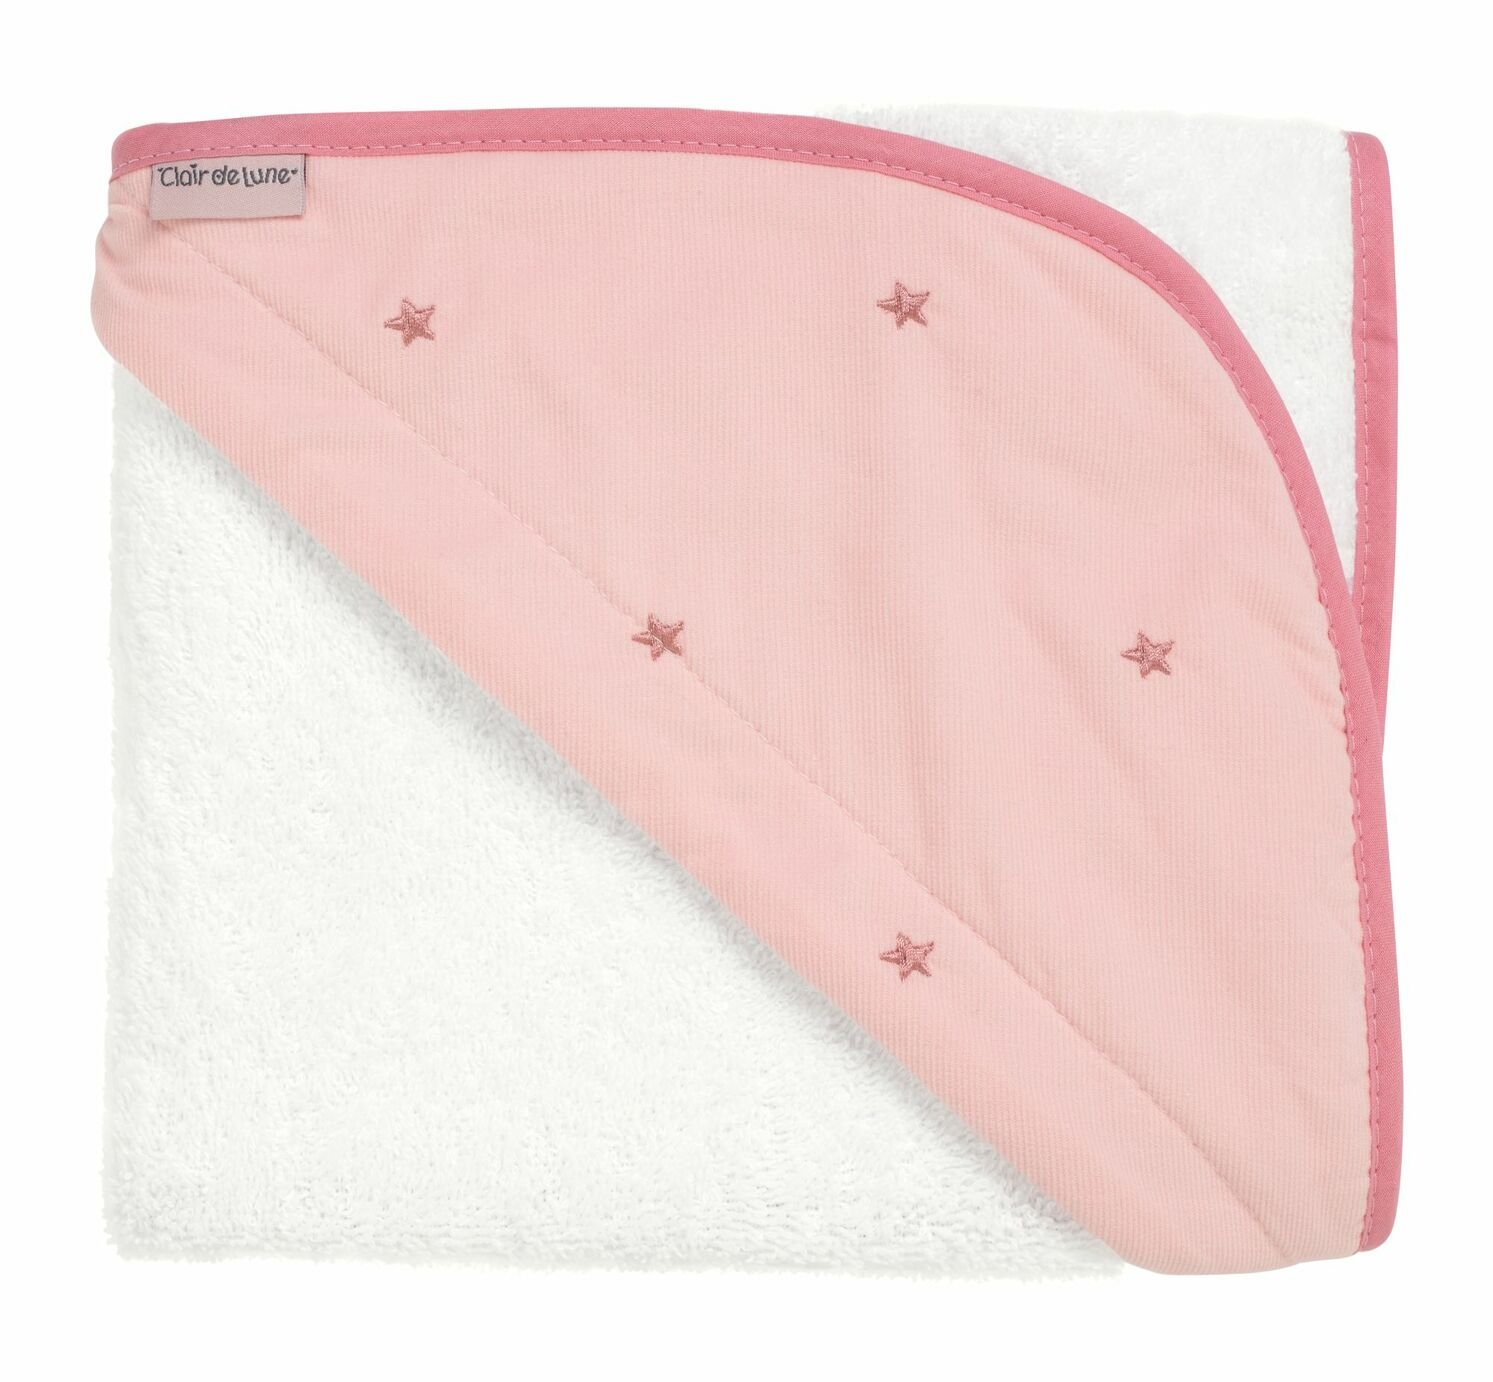 Clair de Lune Lullaby Stars Baby Hooded Towel - Pink